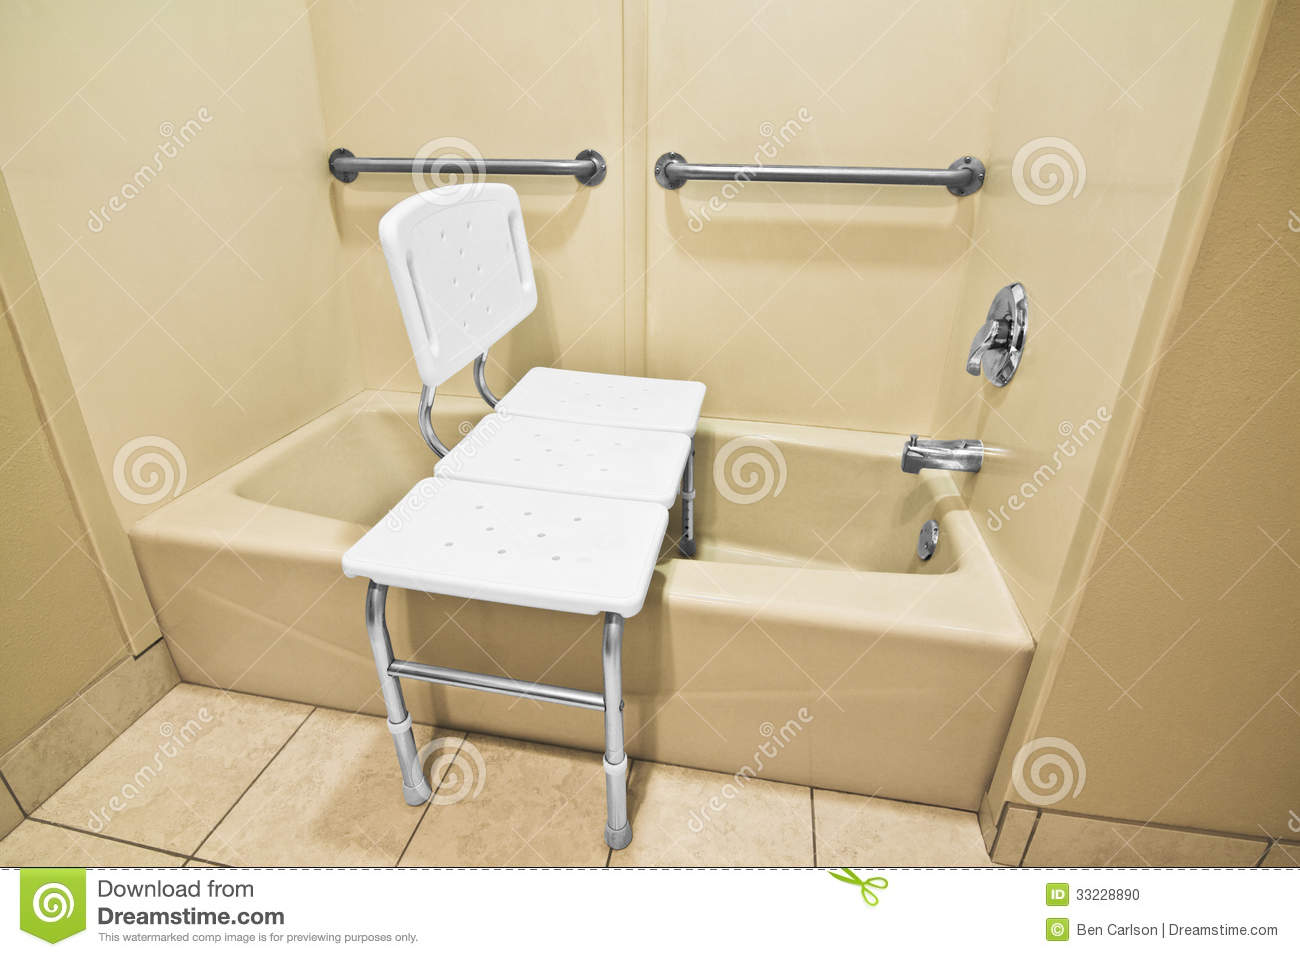 Shower Chairs For Disabled Handicap Bathing Chair Stock Photo Image Of Plastic